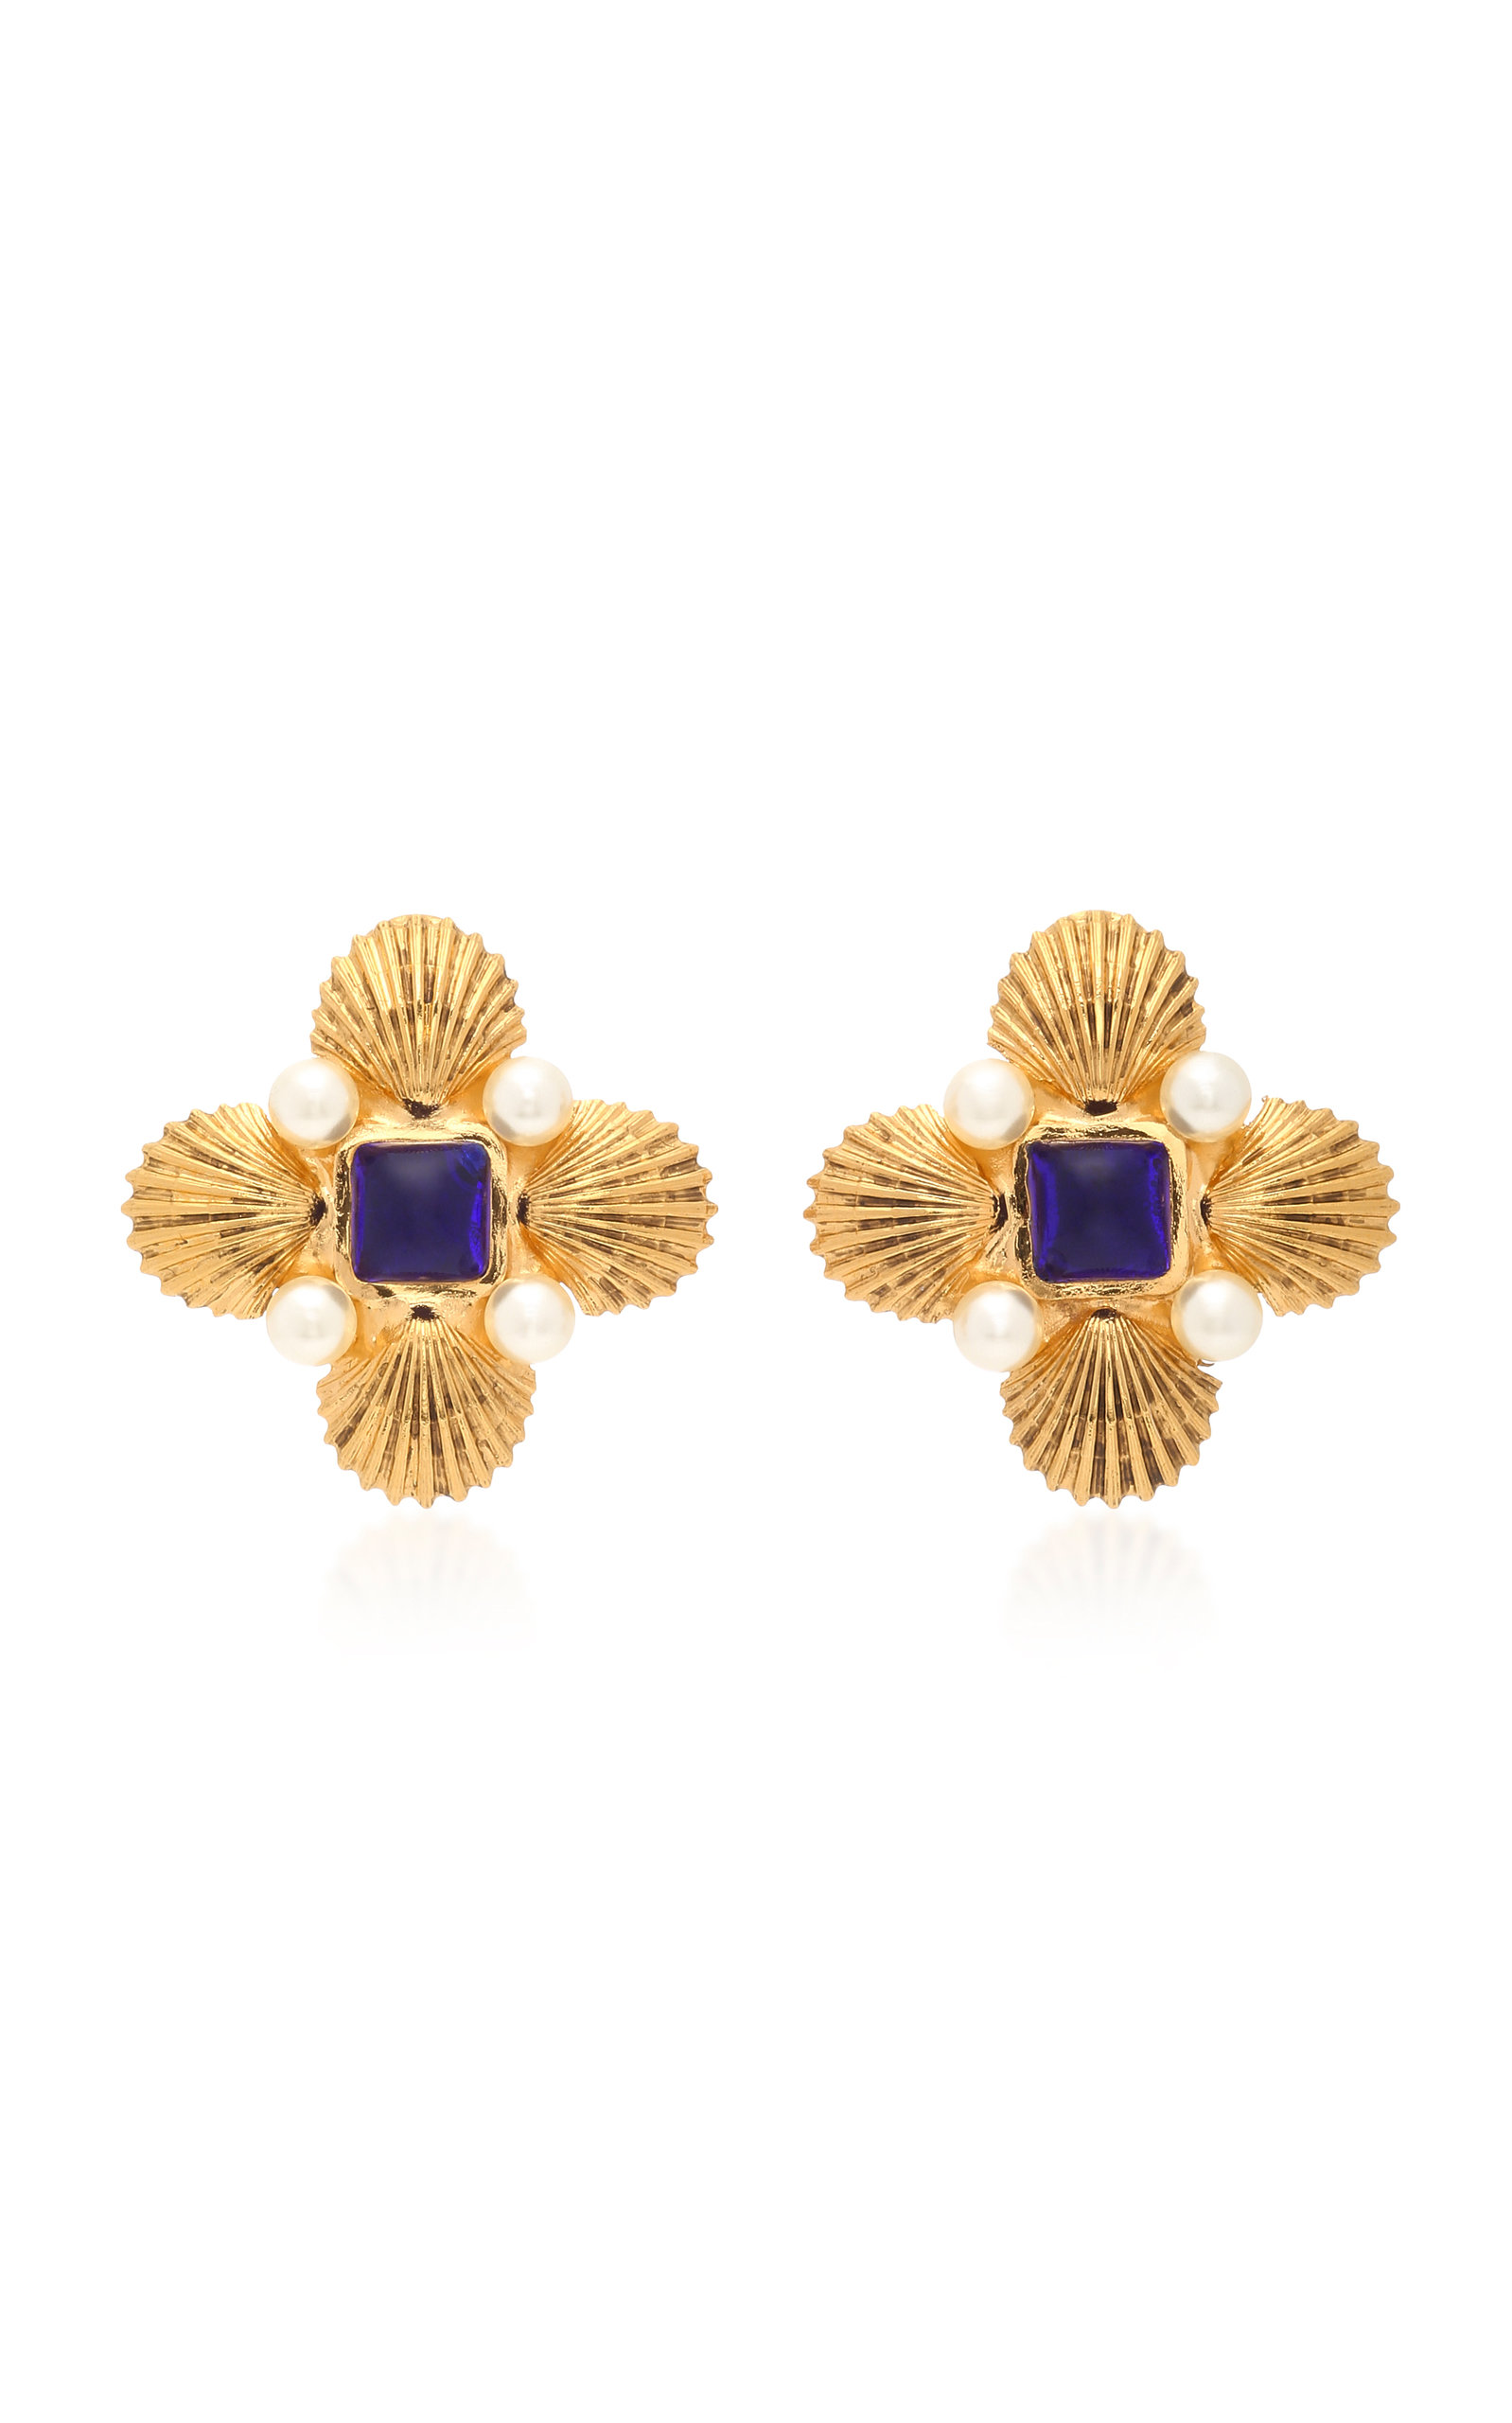 GRIPOIX BYZANTINE SHELL 24K GOLD-PLATED BRASS PEARL AND POURED GLASS CLIP EARRINGS